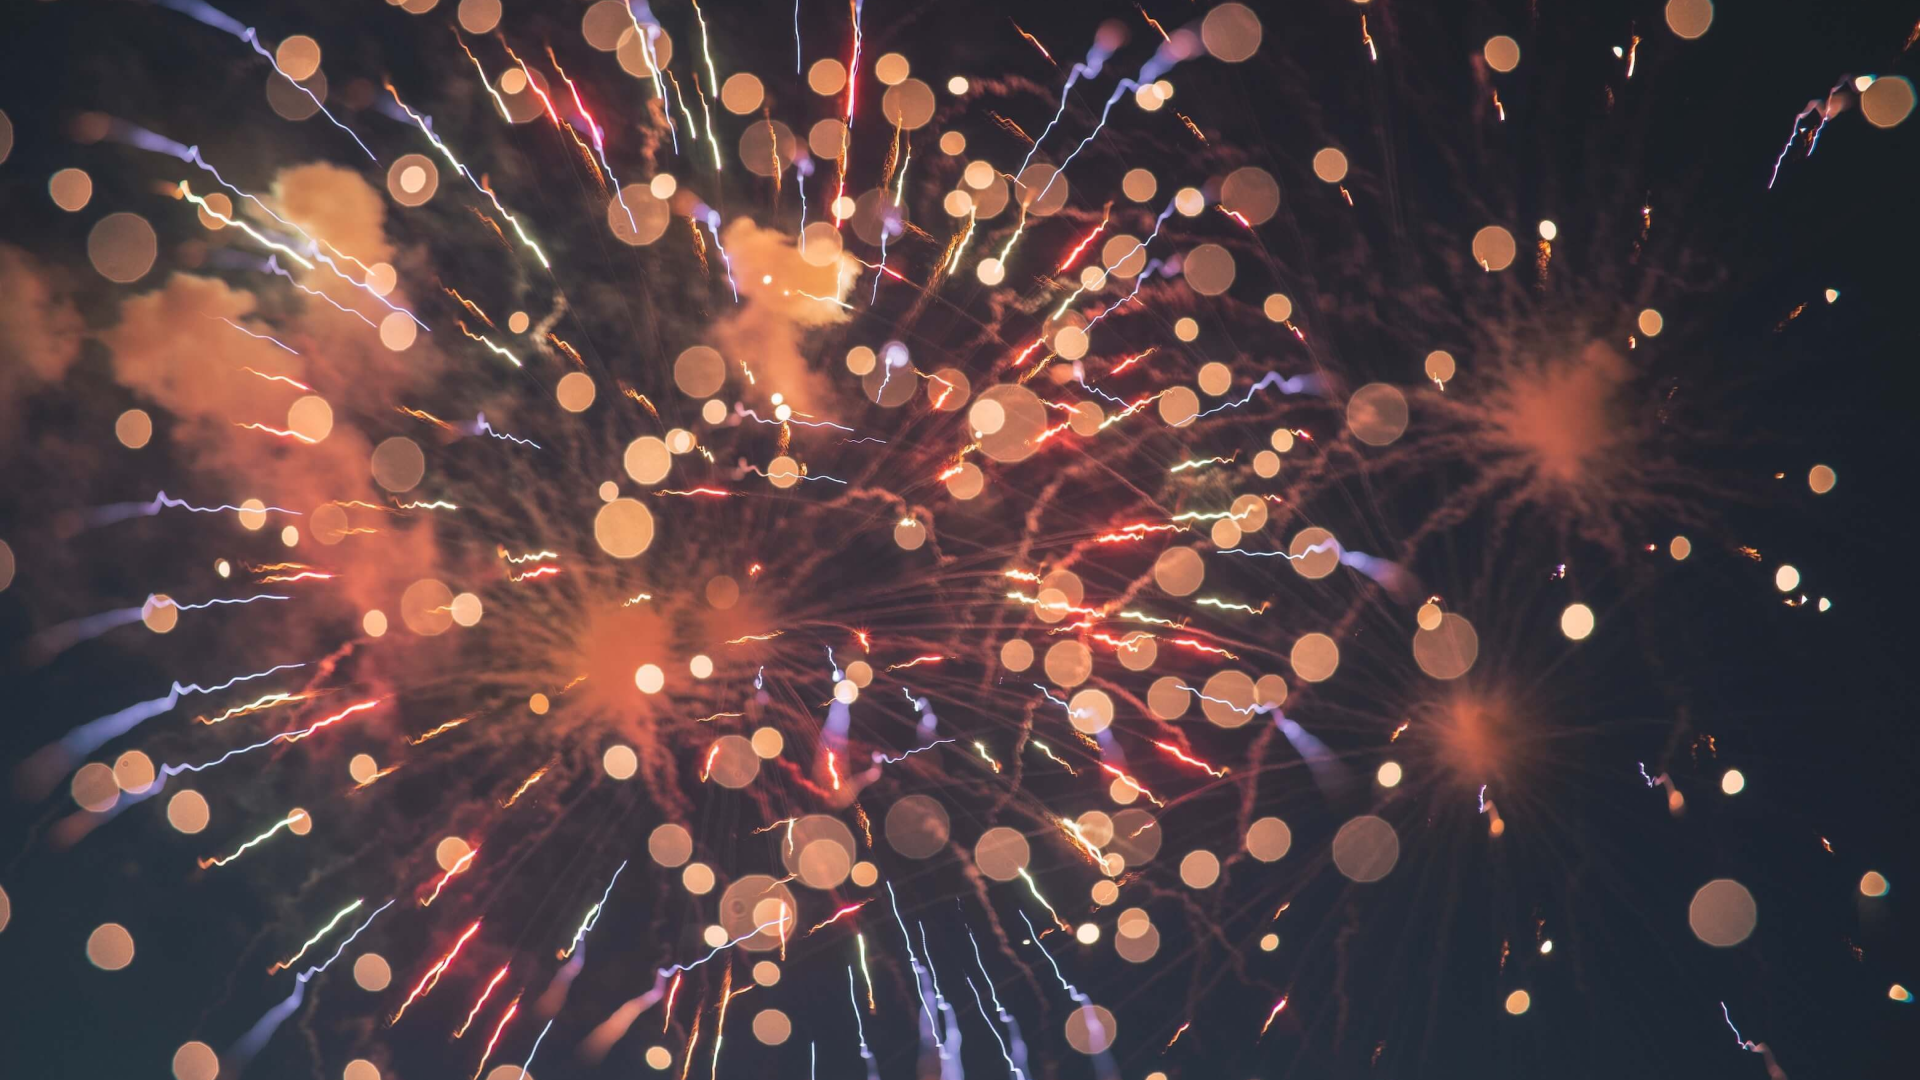 Fireworks with lens flare